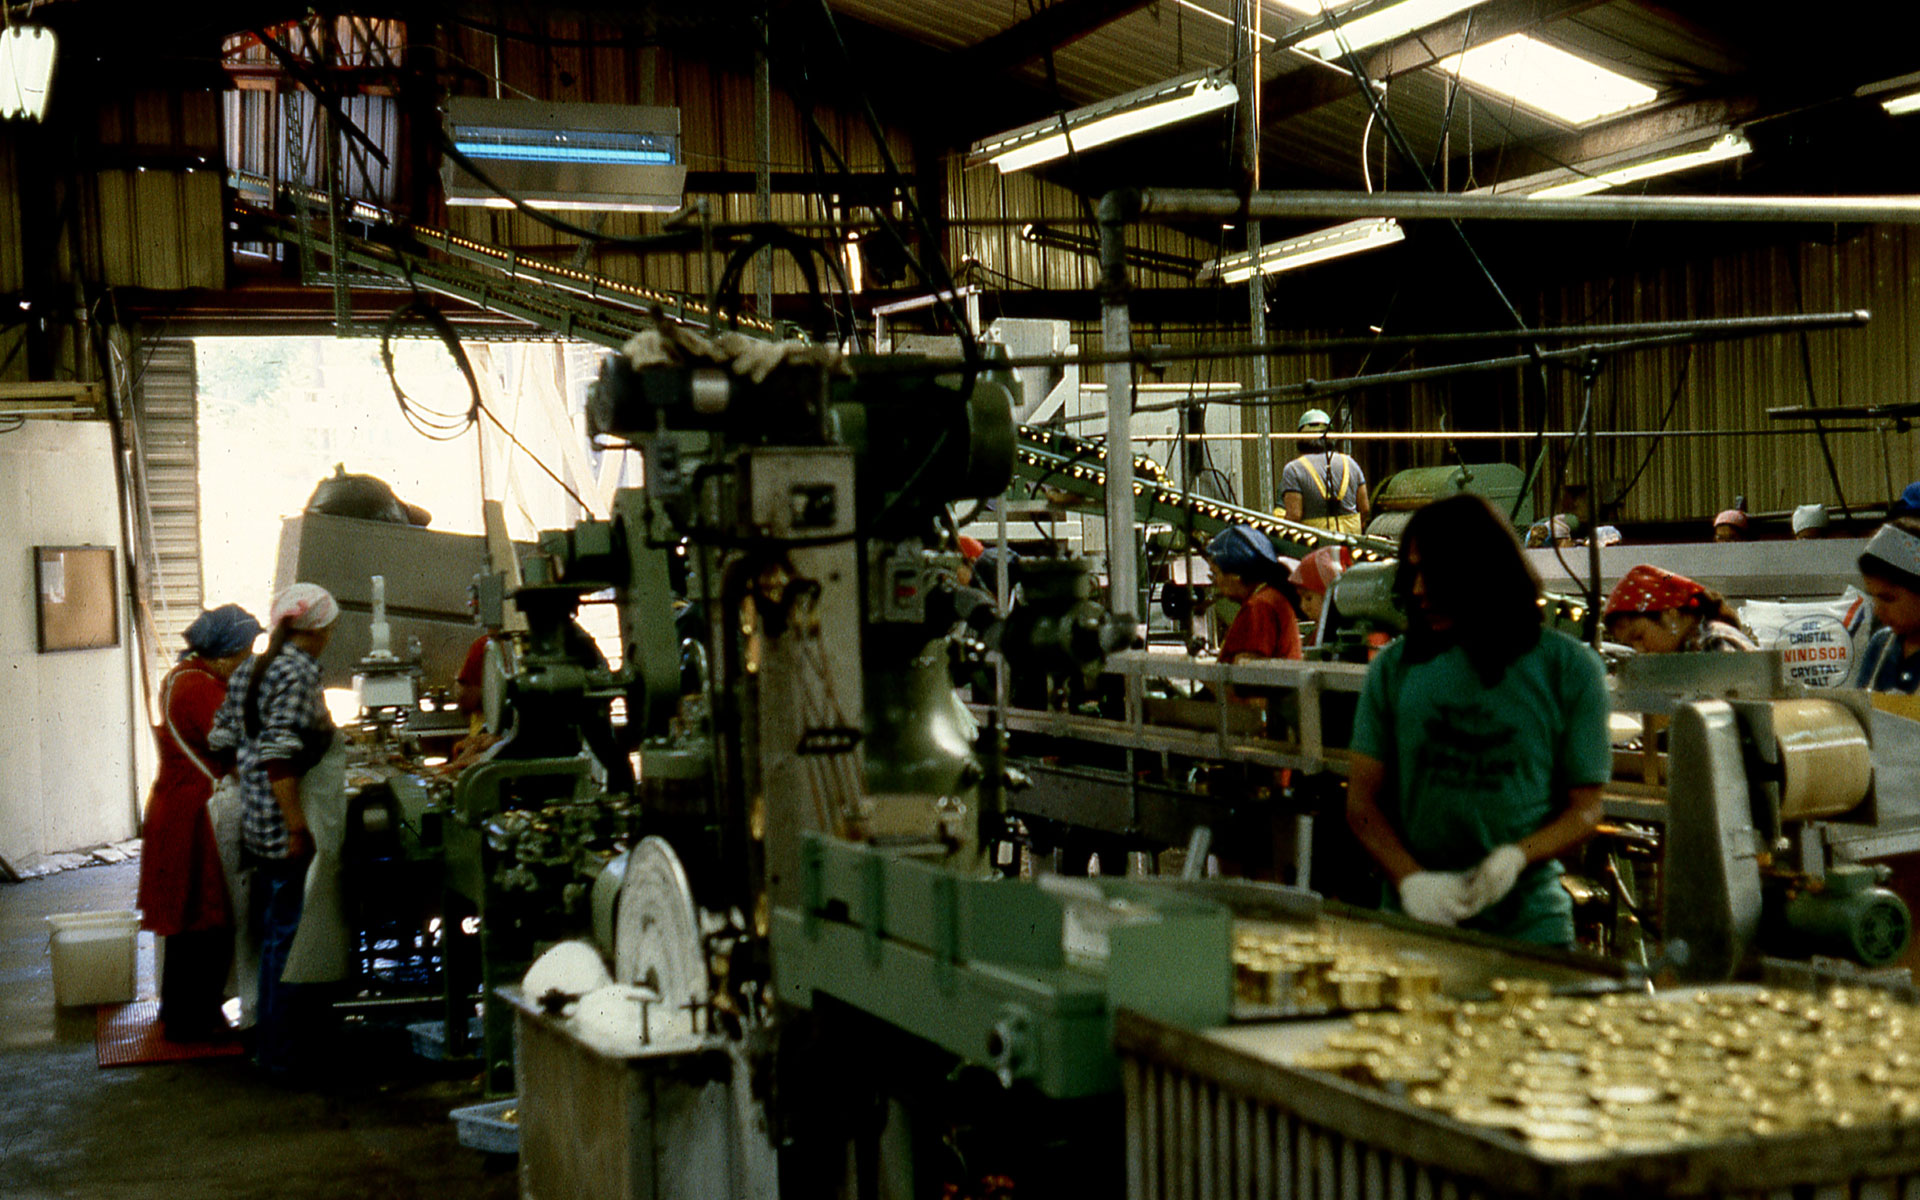 Interior of a modern, mechanized canning line with several workers at different stations.